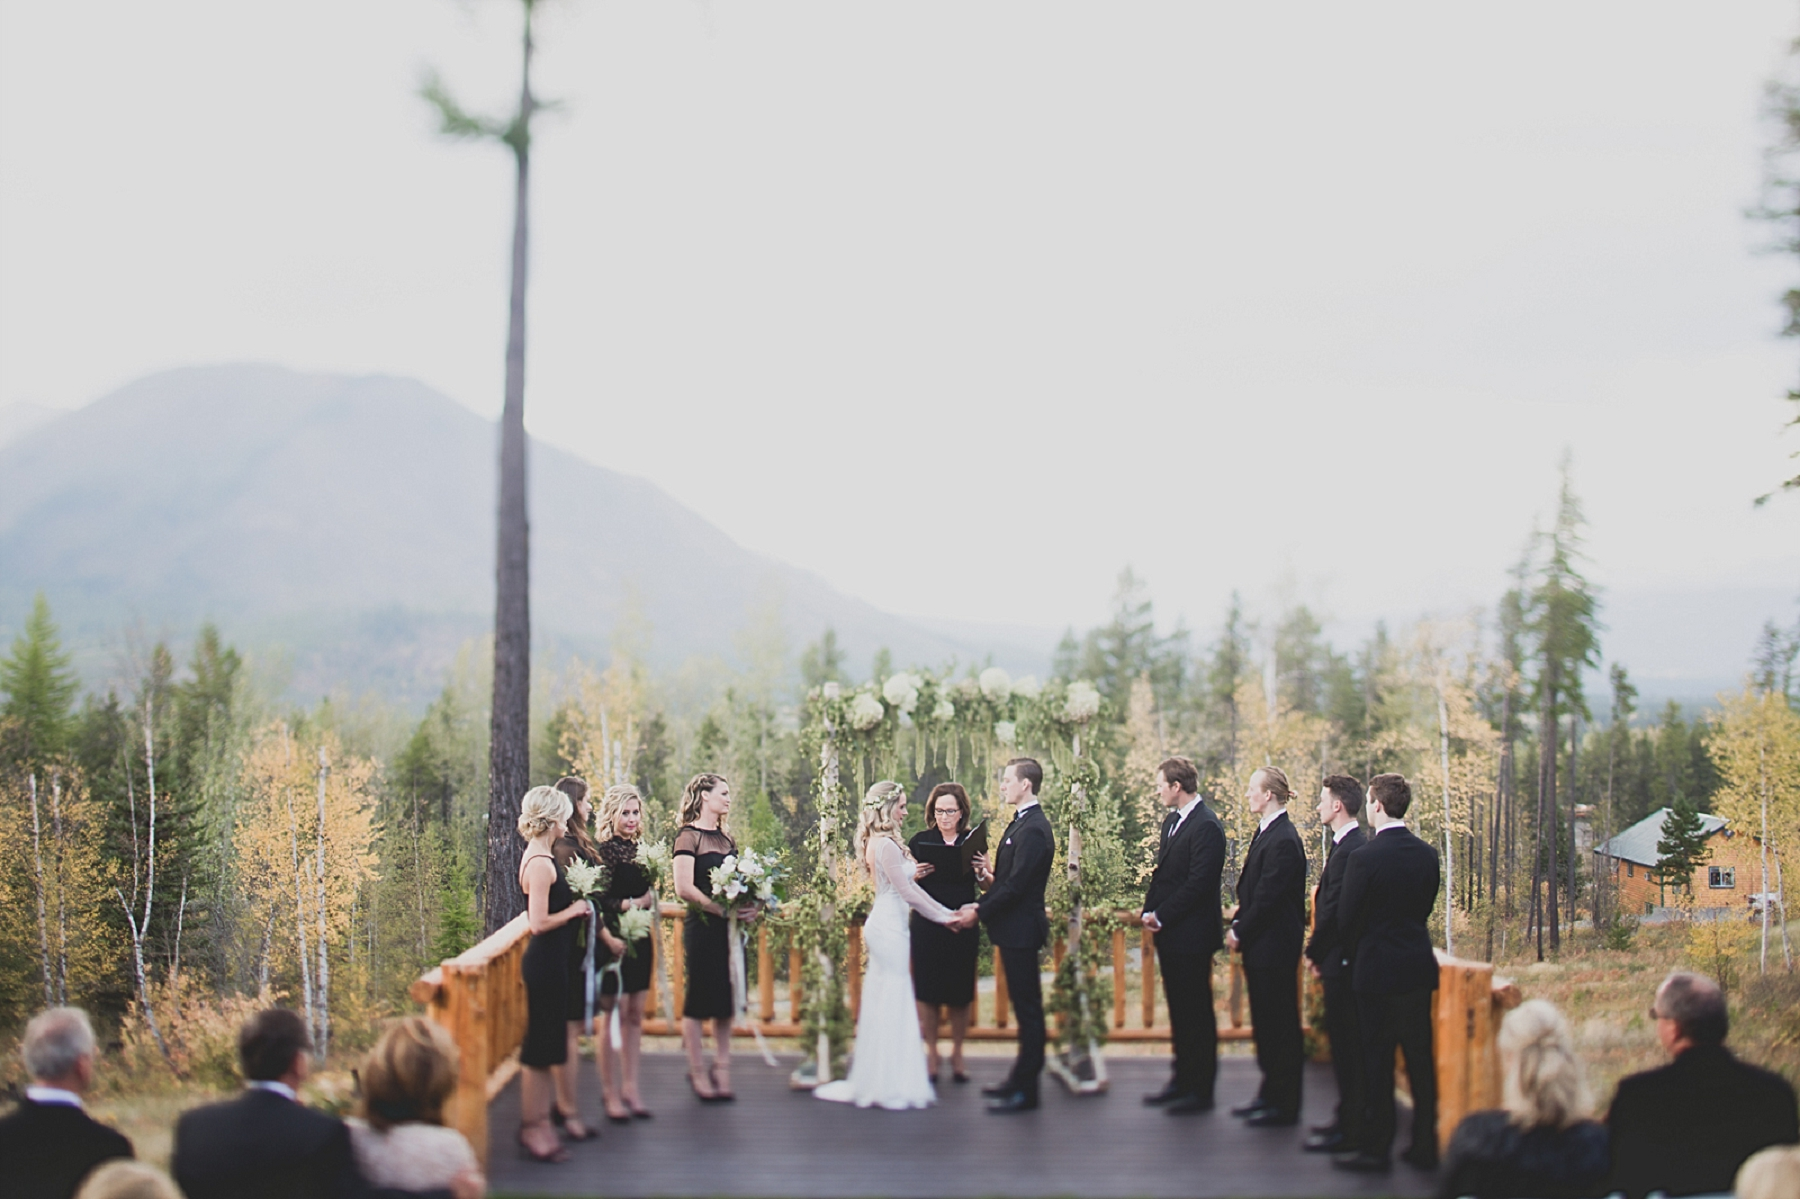 Jennifer_Mooney_Photo_glacier_park_wedding_Beargrass_florals_fall_wedding_elegant_montana_destination_velvet_bride_katie_may_dress_verona_gown_00081.jpg